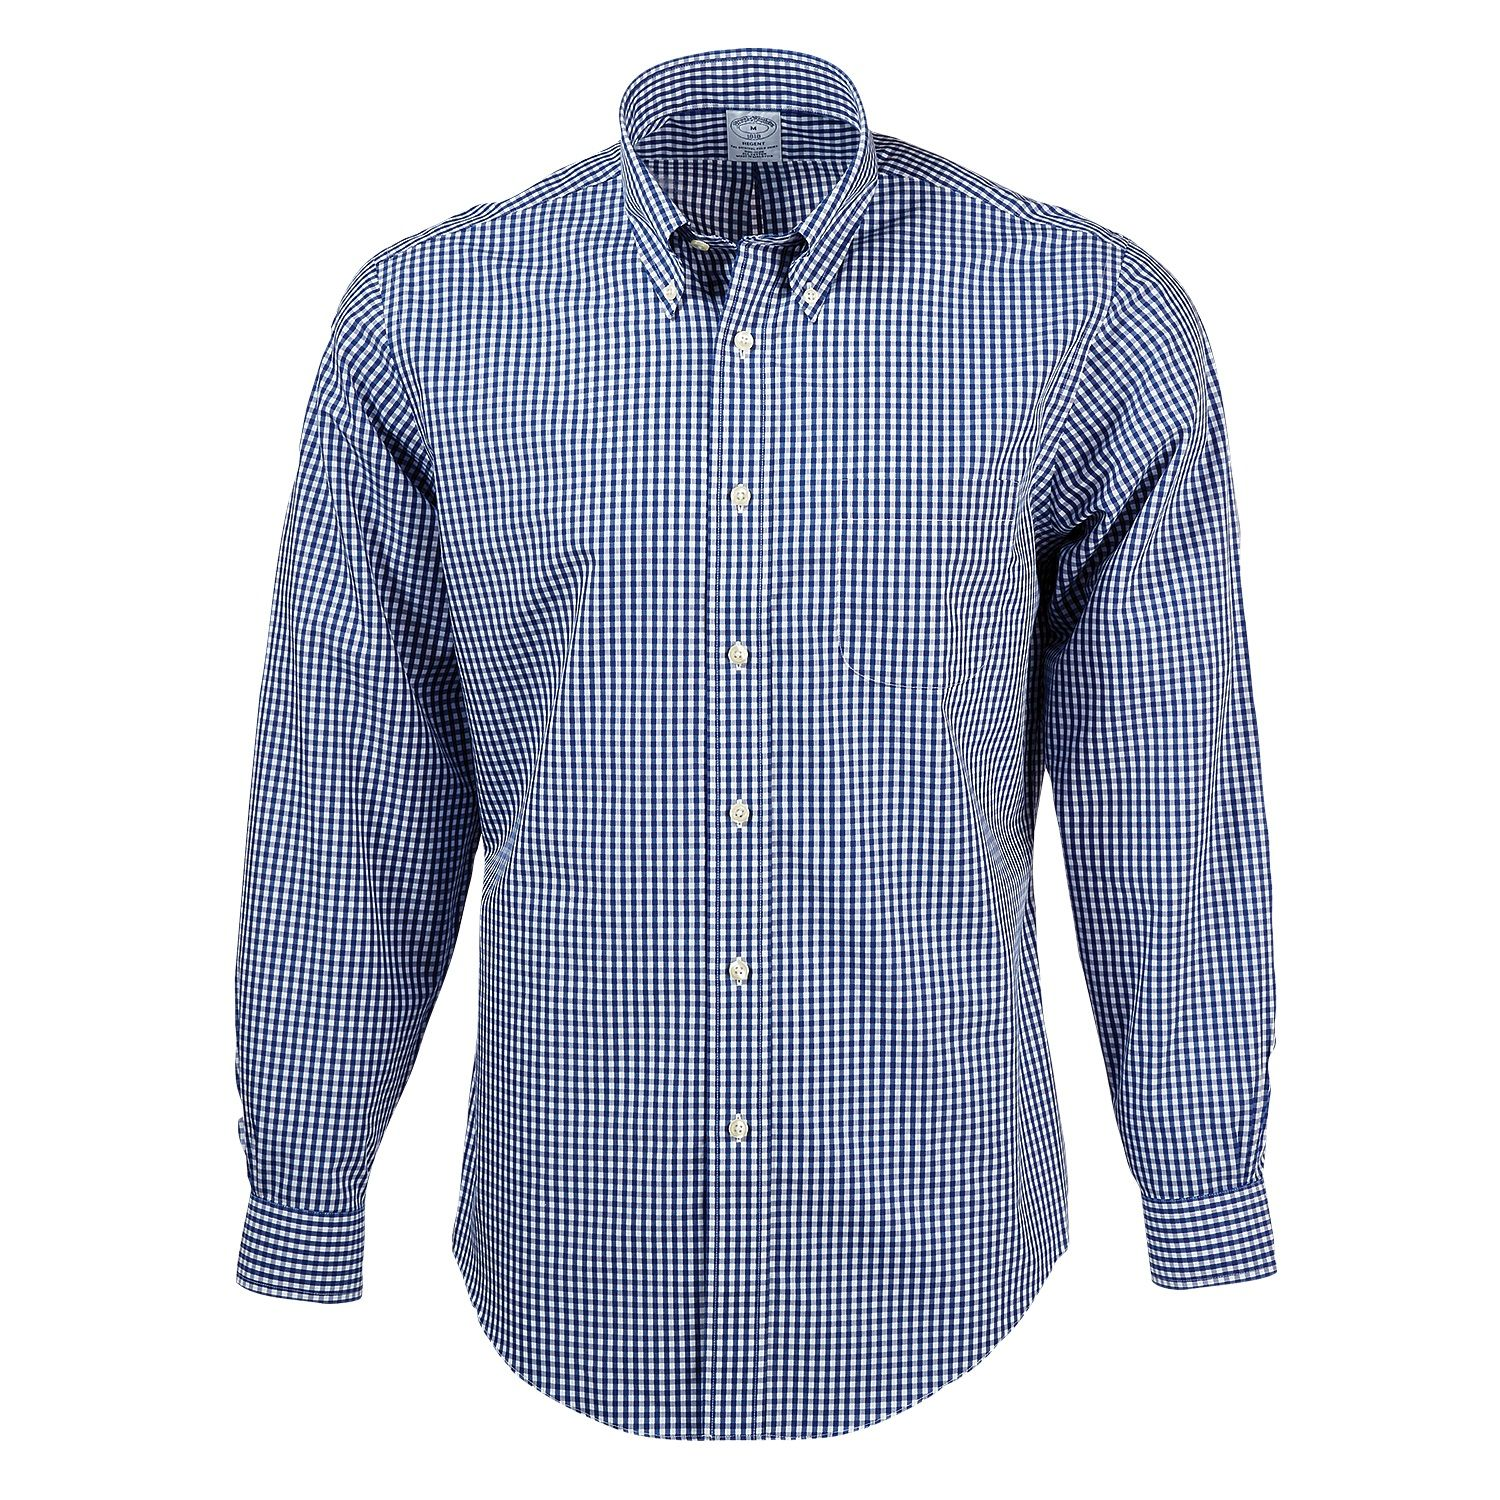 e73fac2d4656d9 Brooks Brothers BR0731 - Men's Madison Fit Non-Iron Gingham Sport Shirt  #brooksbrothers #mensworkshirt #corporateevents